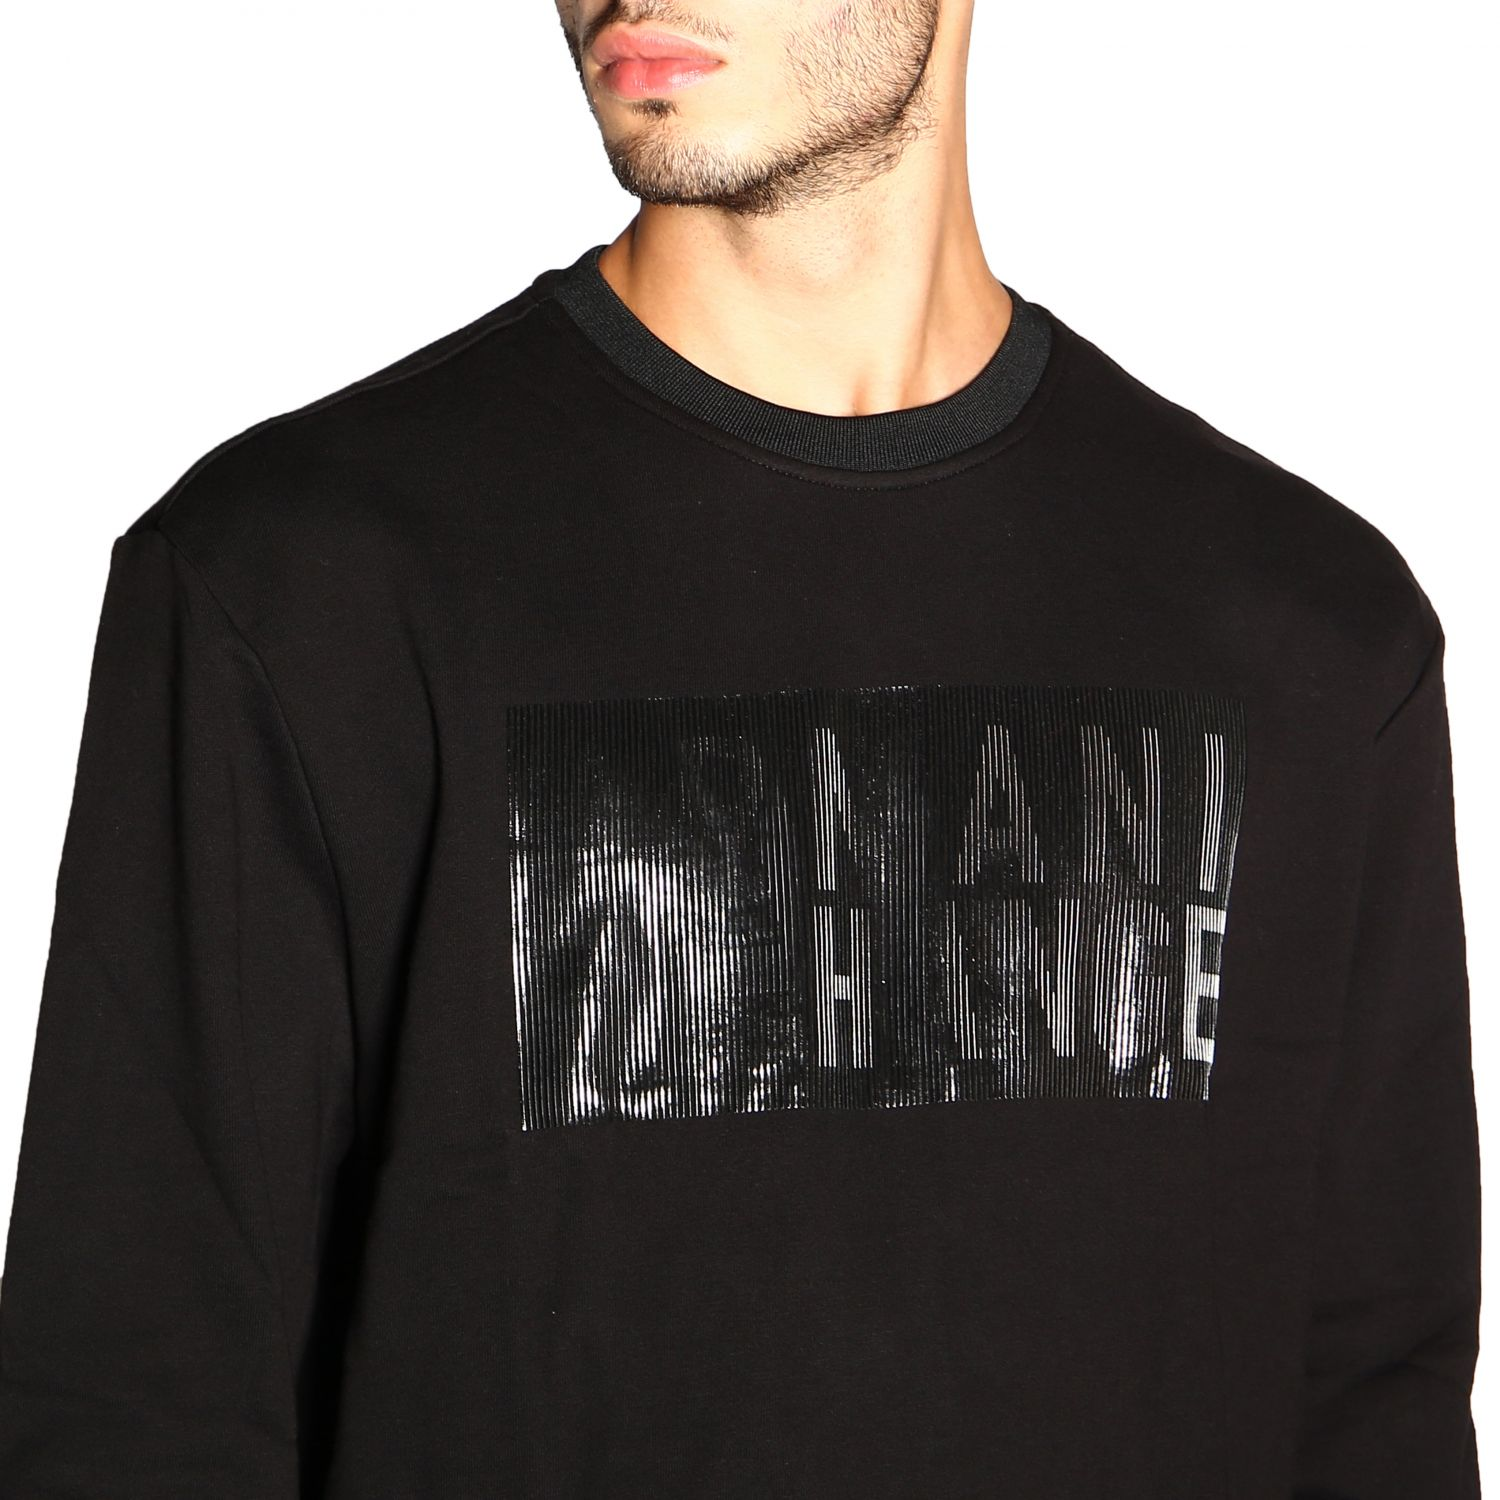 Sweatshirt Armani Exchange: Pull homme Armani Exchange noir 5